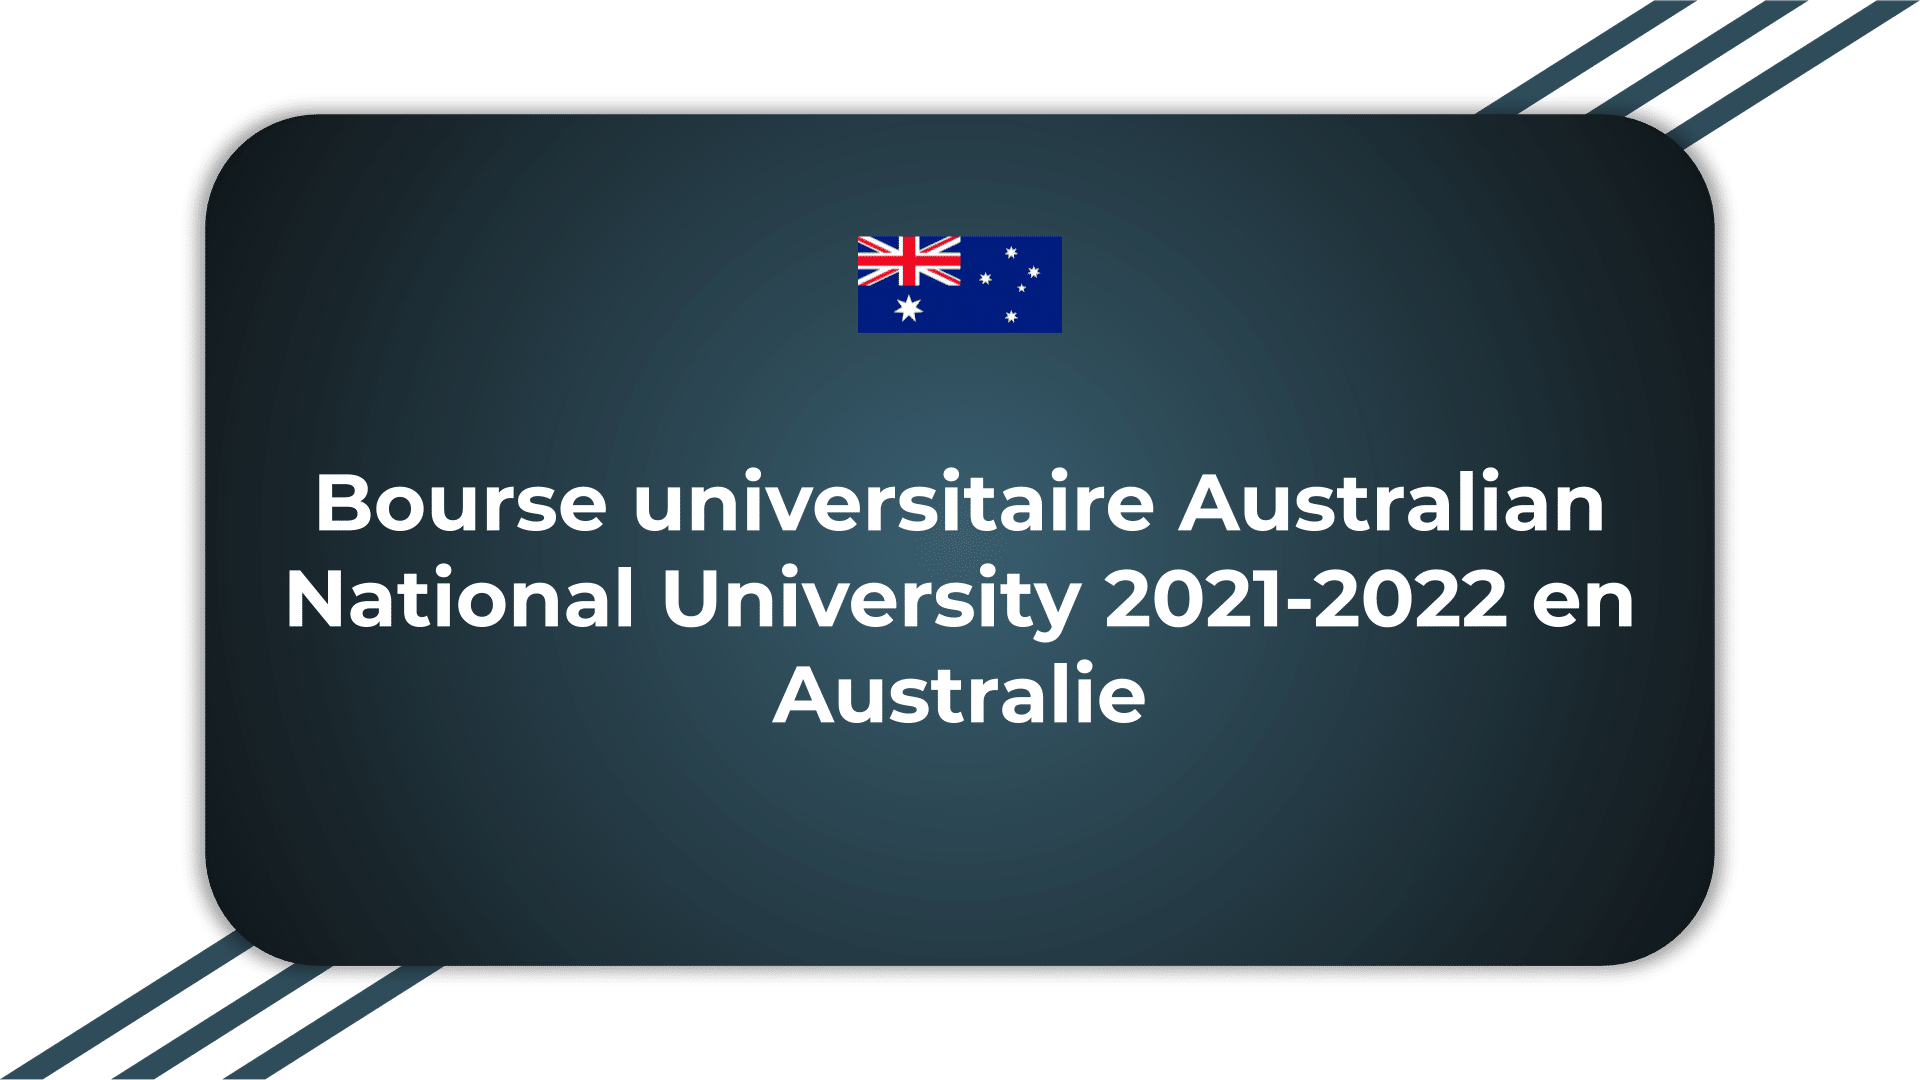 Bourse universitaire Australian National University